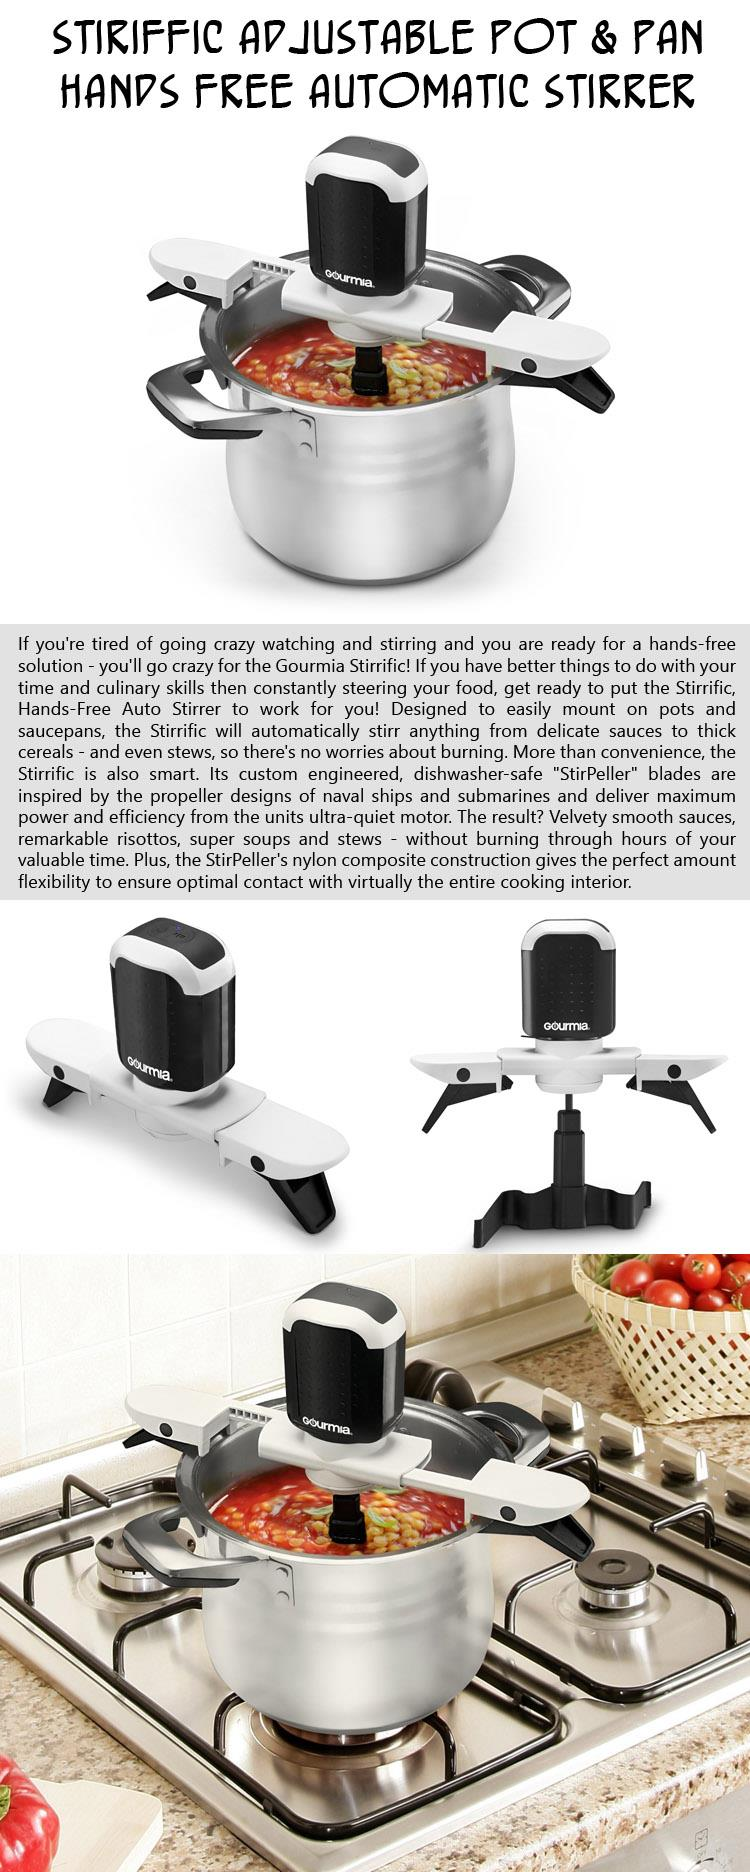 Stiriffic Adjustable Pot & Pan Hands Free Automatic Stirrer